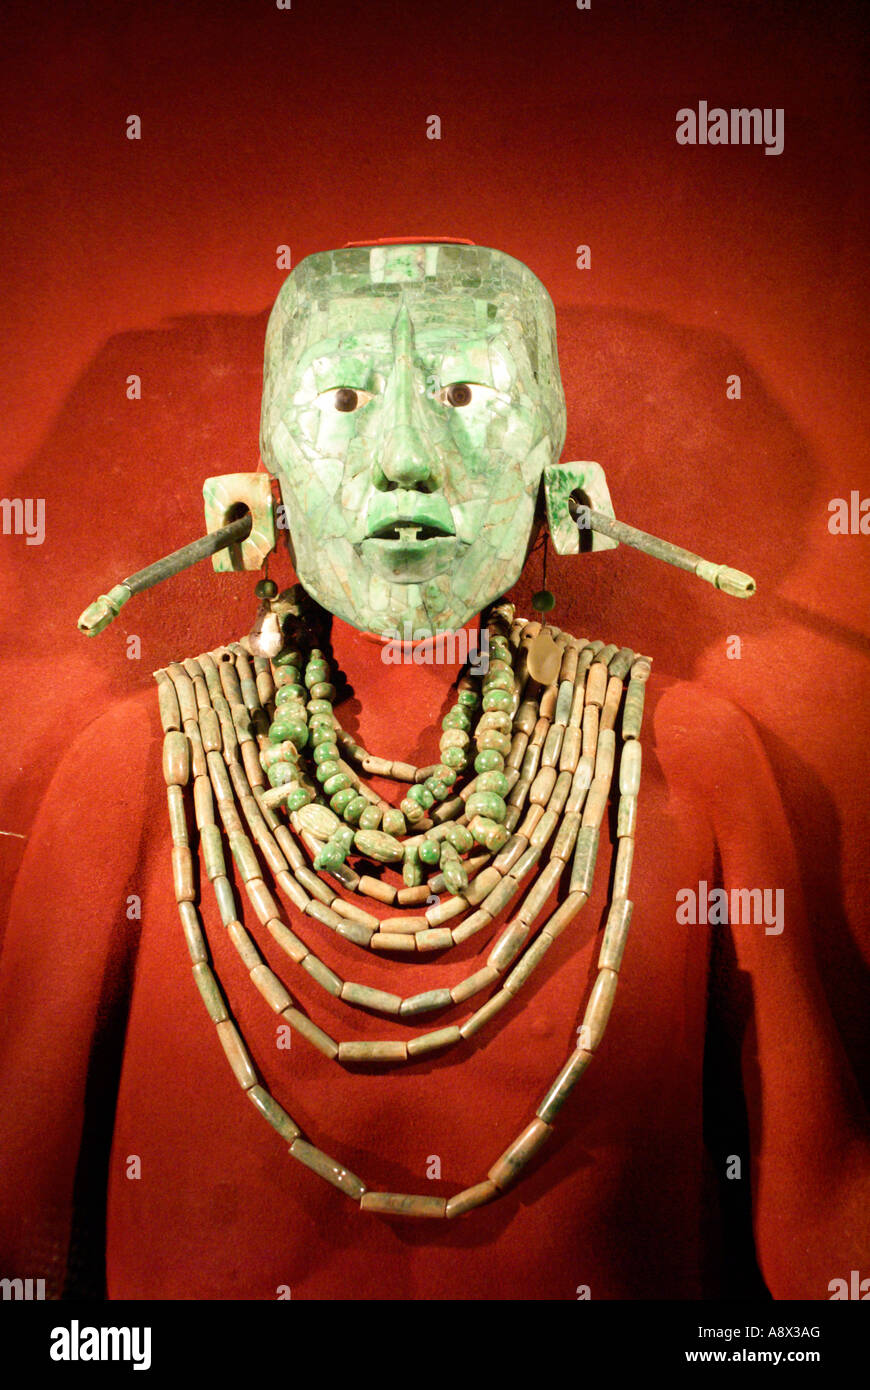 Replica of Lord Pakal's jade death mask and Mayan jade necklaces from Pakal's tomb in Palenque, Chiapas, - Stock Image